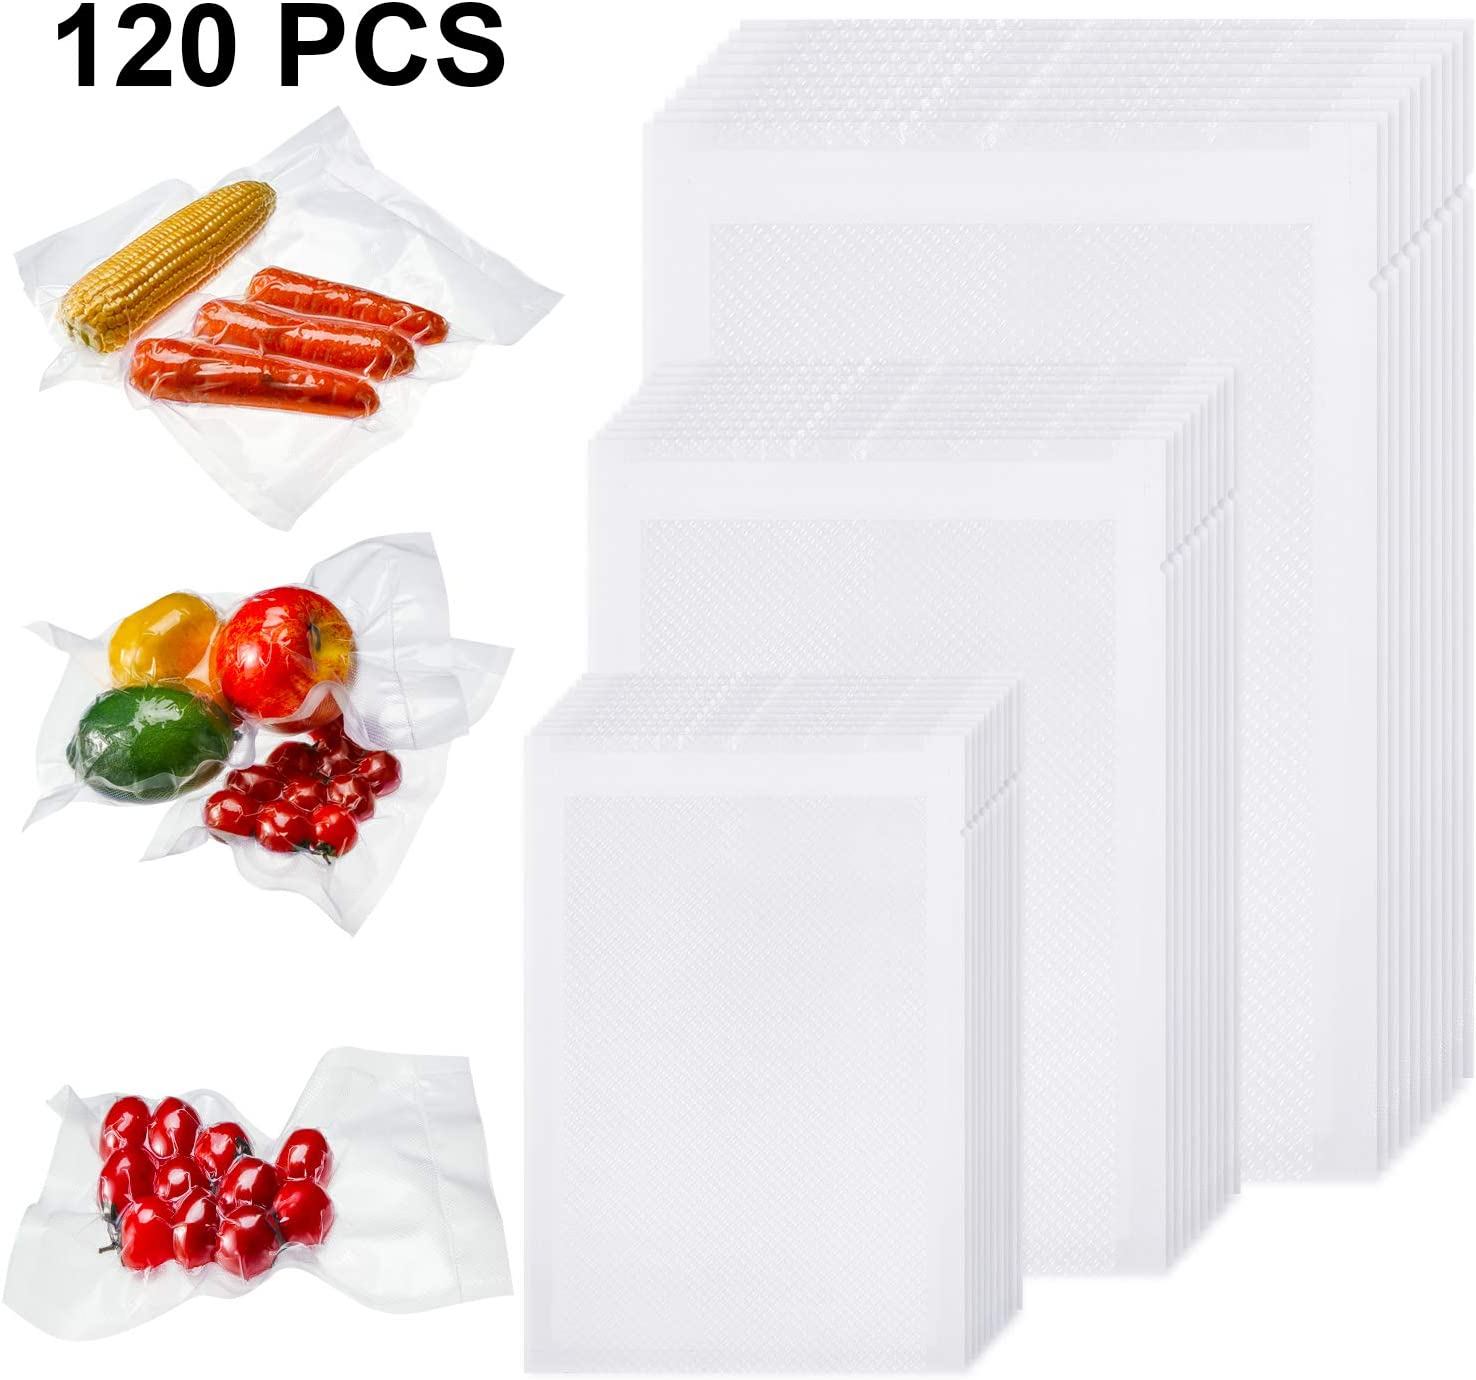 Outus 120 Pieces 4 x 6 Inch, 6 x 10 Inch, 8 x 12 Inch Vacuum Heat-Seal Bags Pre-Cut Seal Bag Vacuum Sealer Bags for Kitchen Food Preservation Supplies